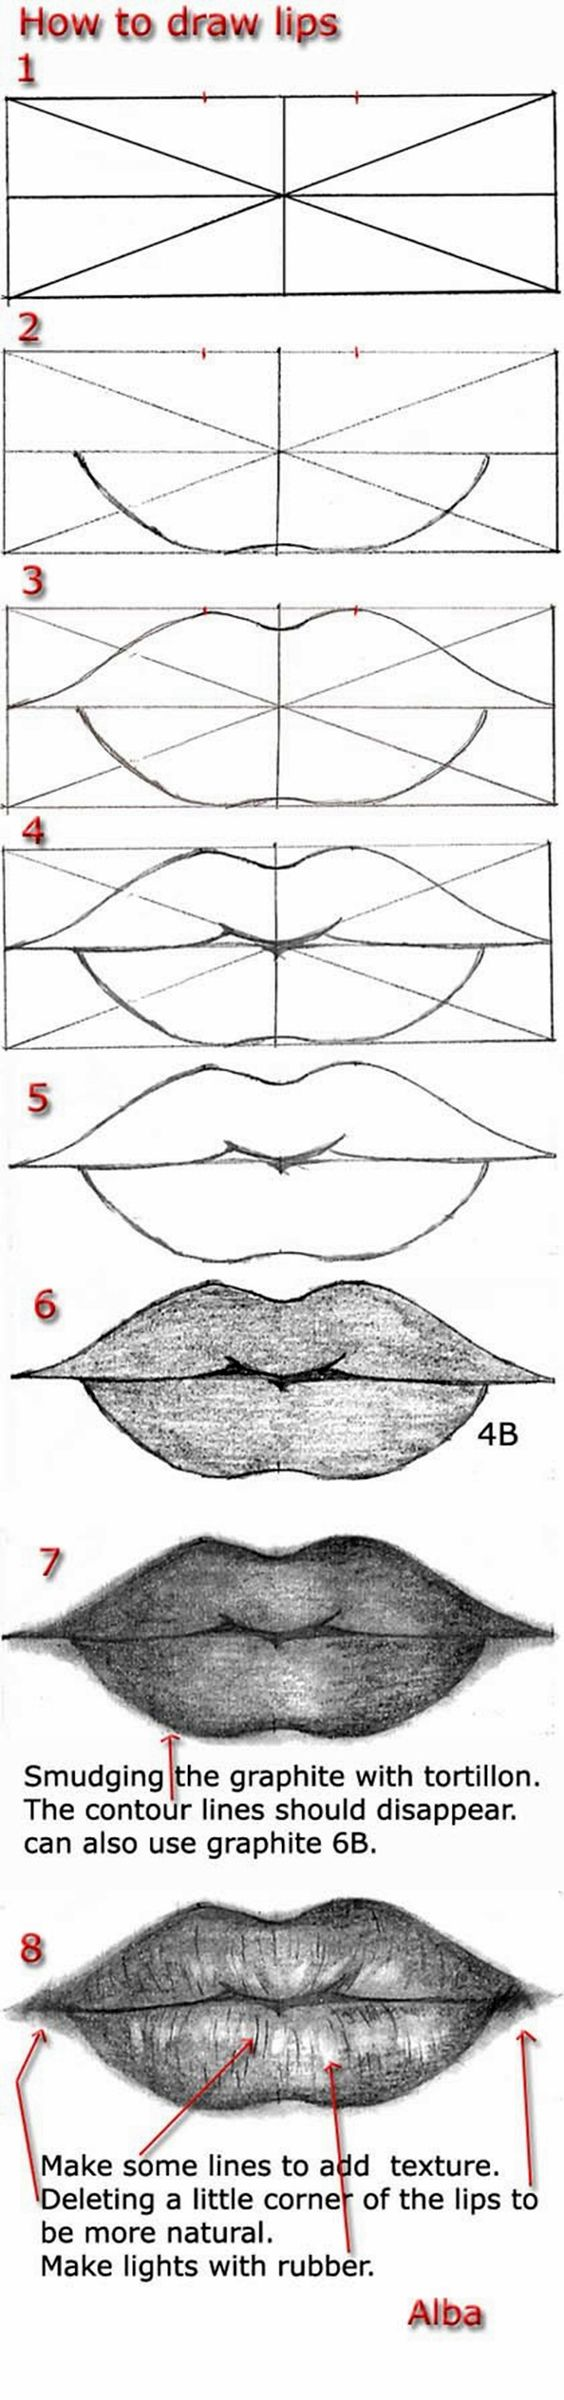 how to draw folds step by step with pencil